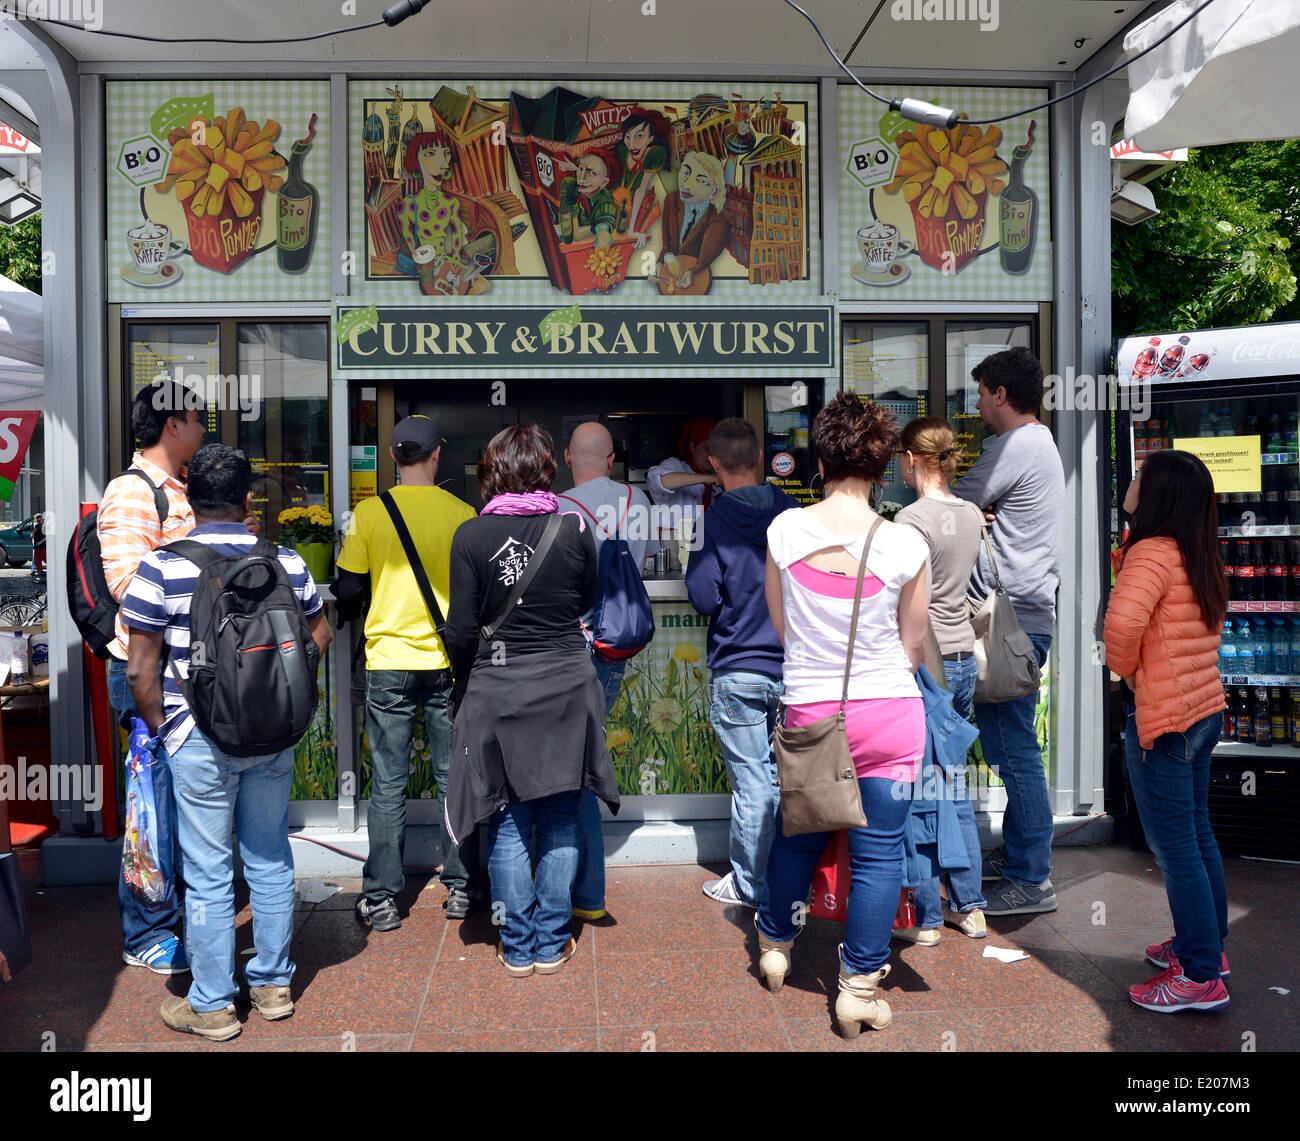 Organic Currywurst and Bratwurst food stall, Berlin, Germany Stock Photo